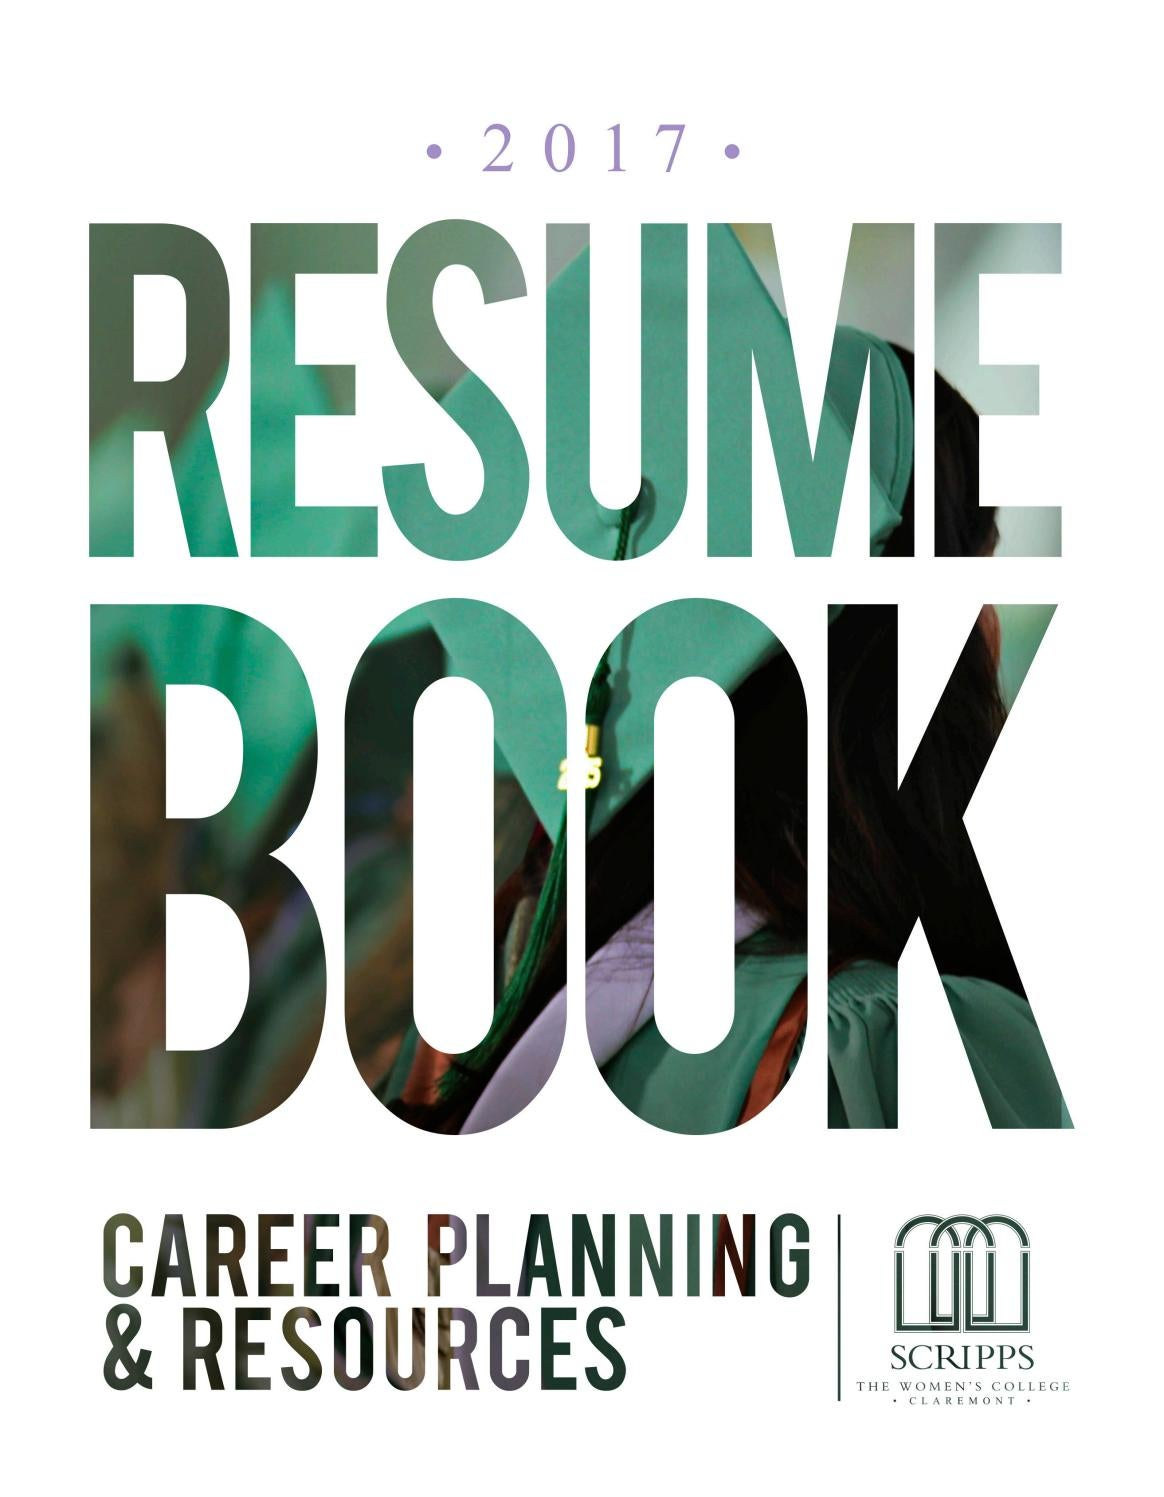 2017 resume book by career planning resources at scripps college 2017 resume book by career planning resources at scripps college issuu fandeluxe Image collections